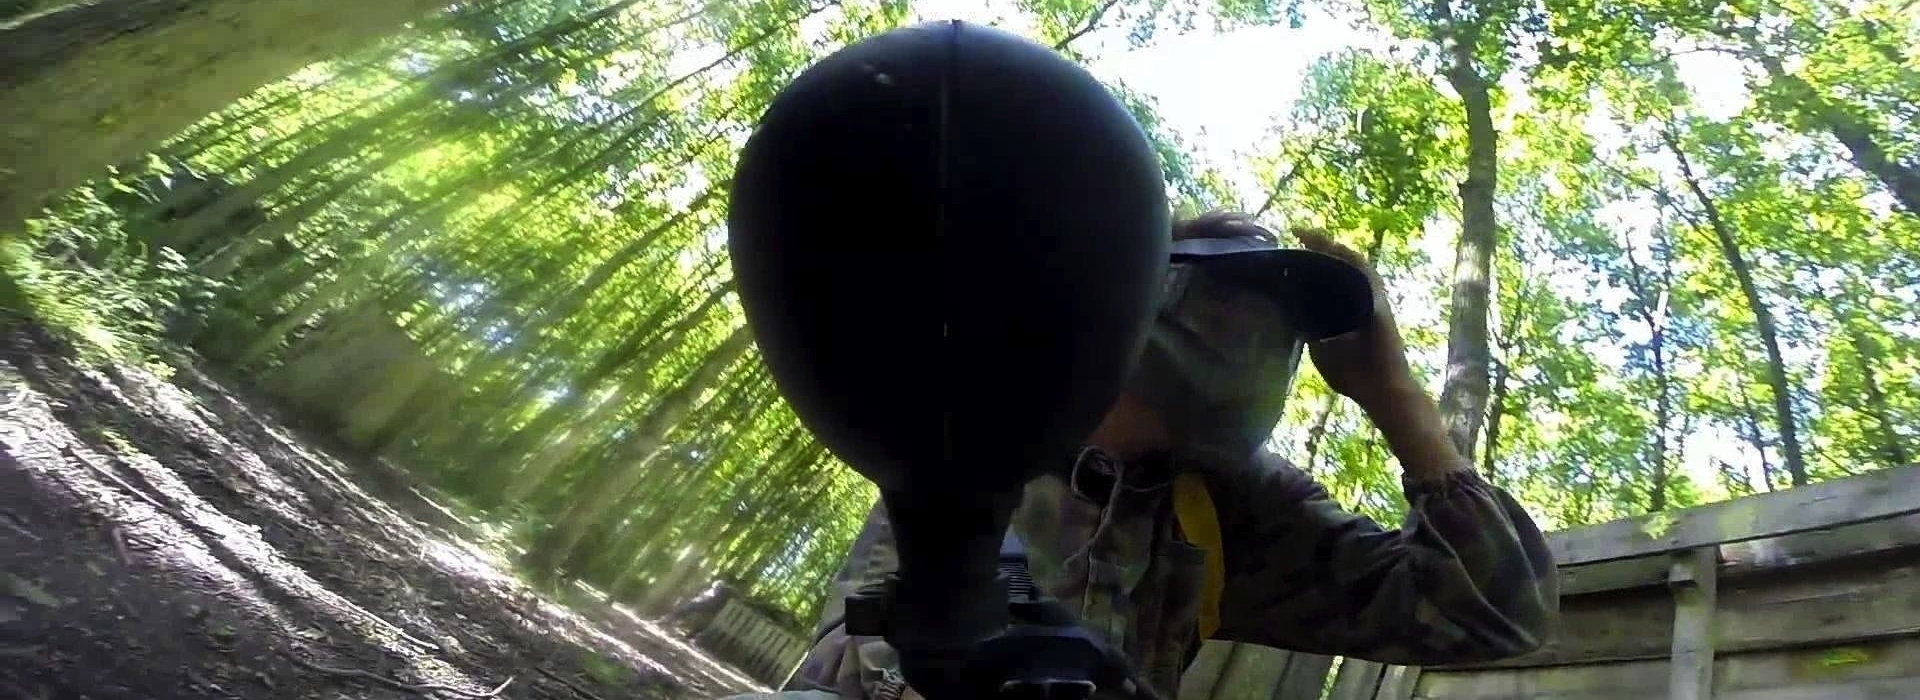 14942366208paintball.jpg